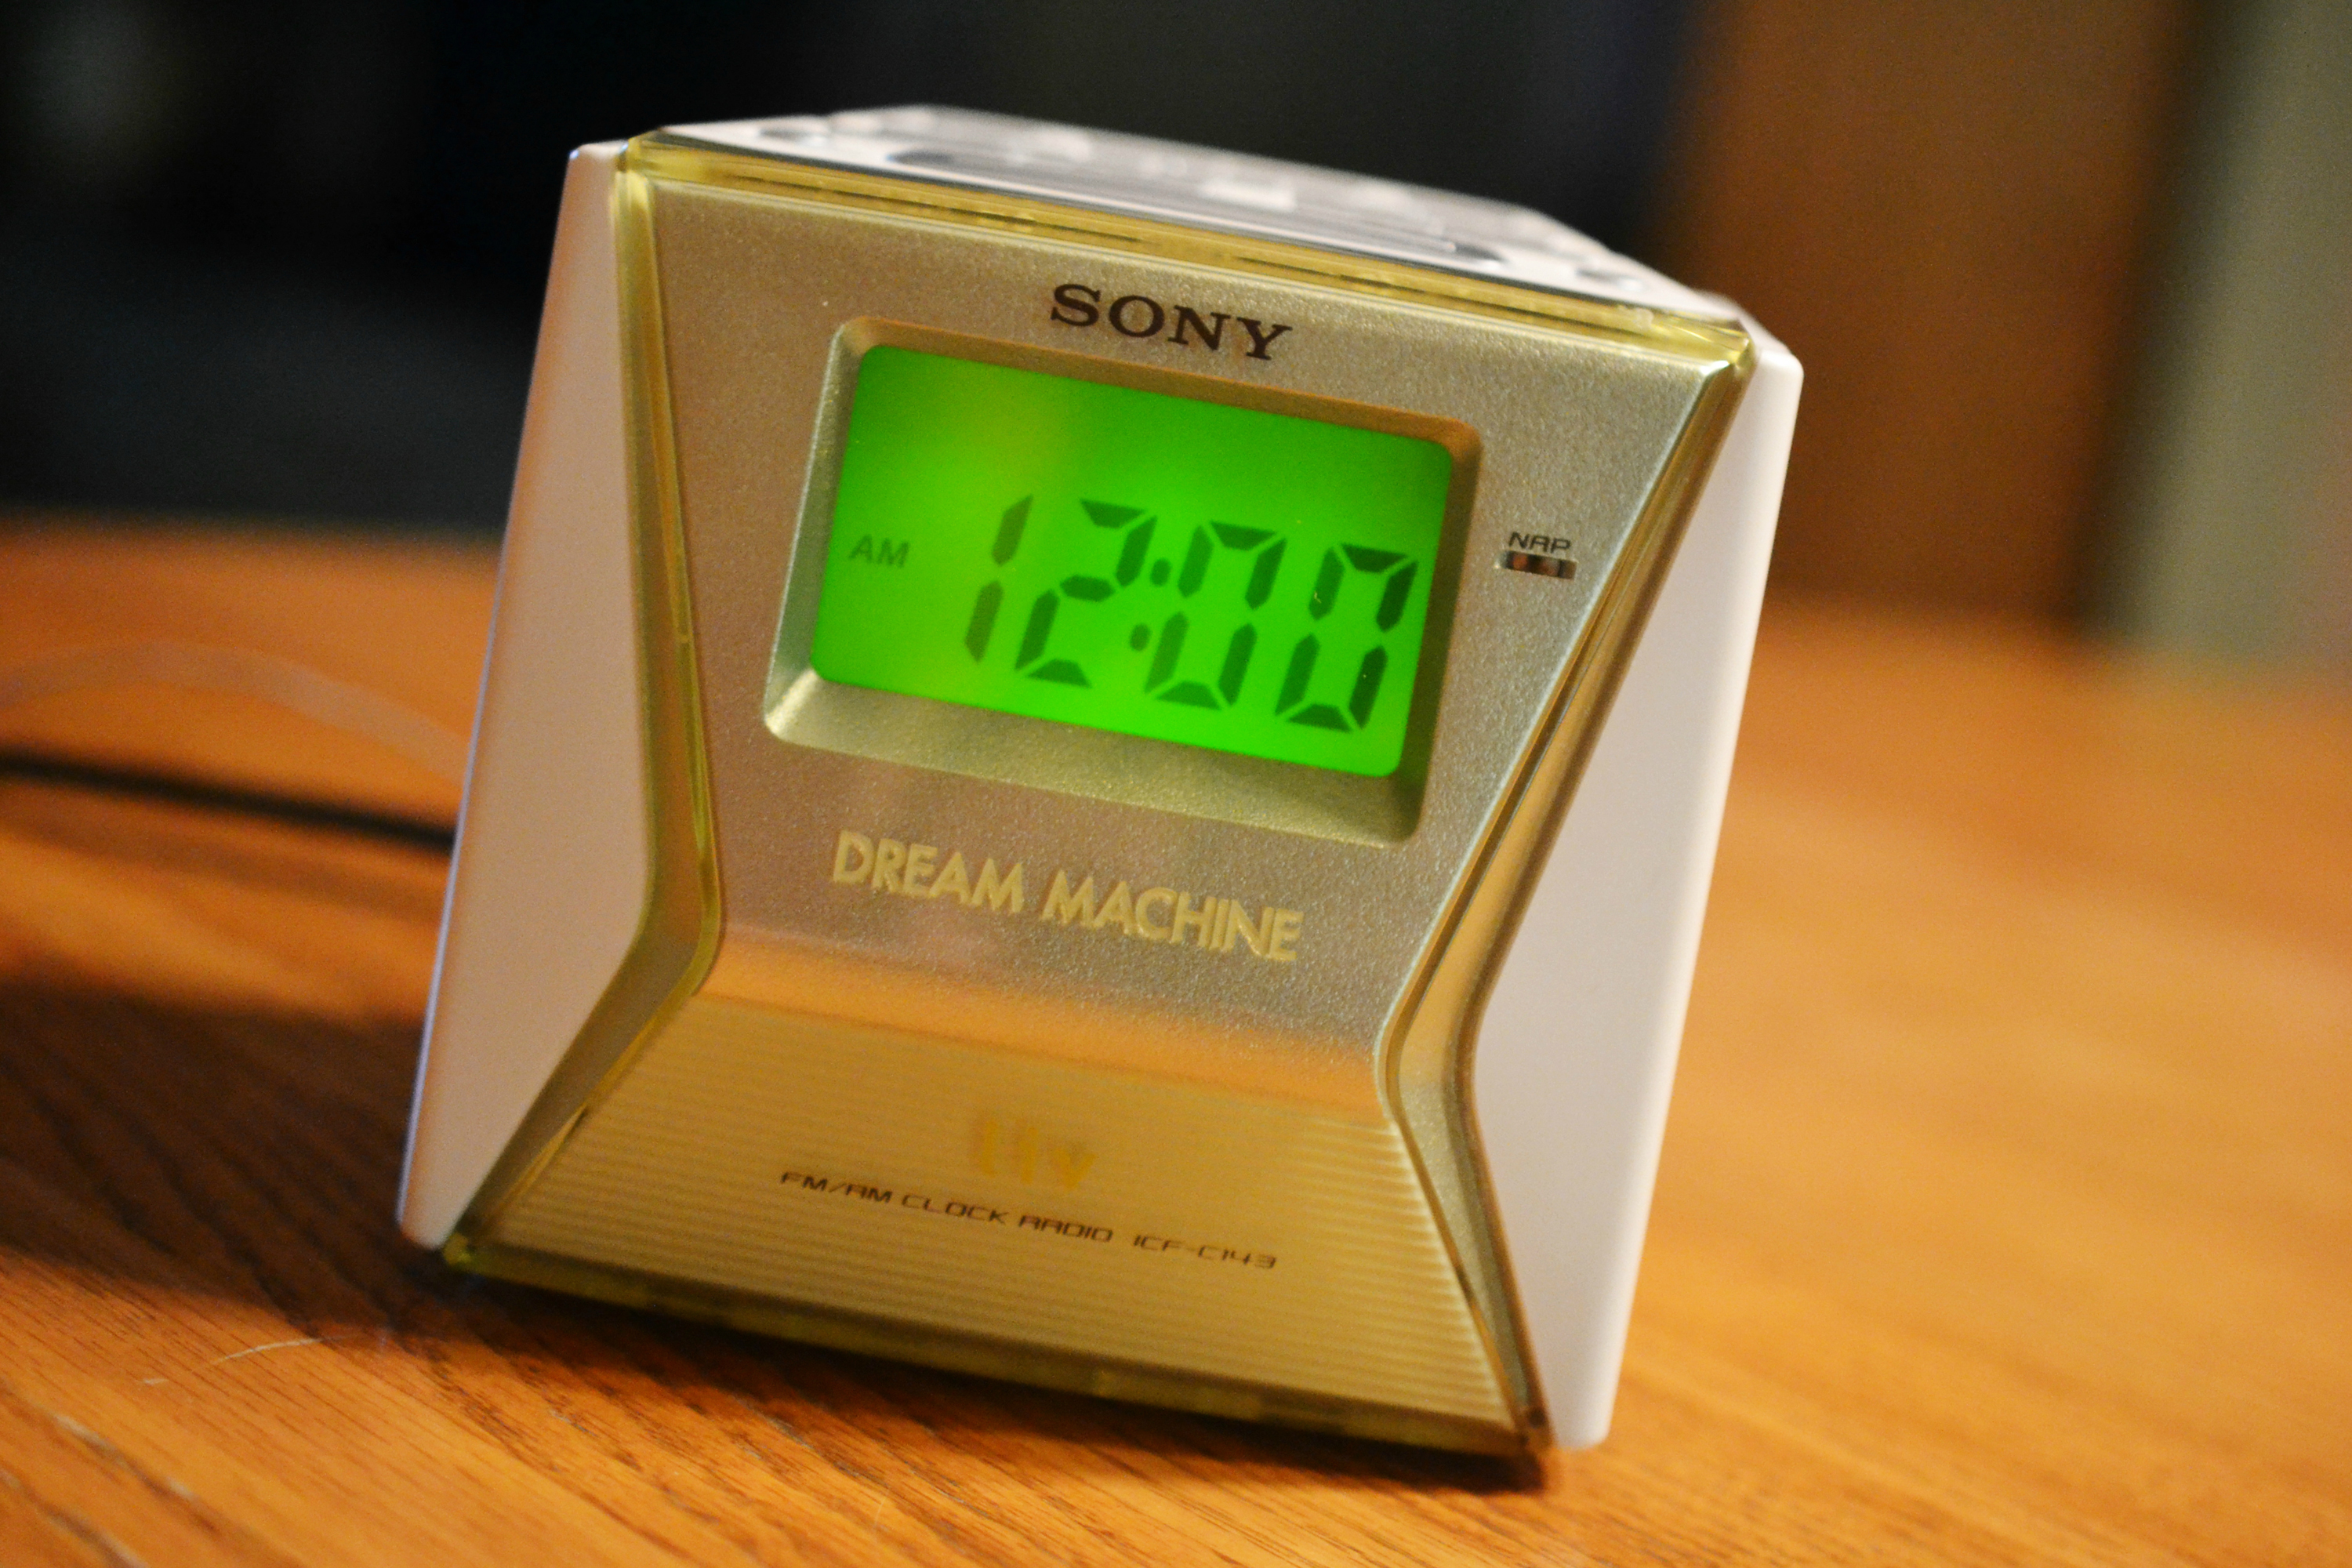 setting sony machine clock